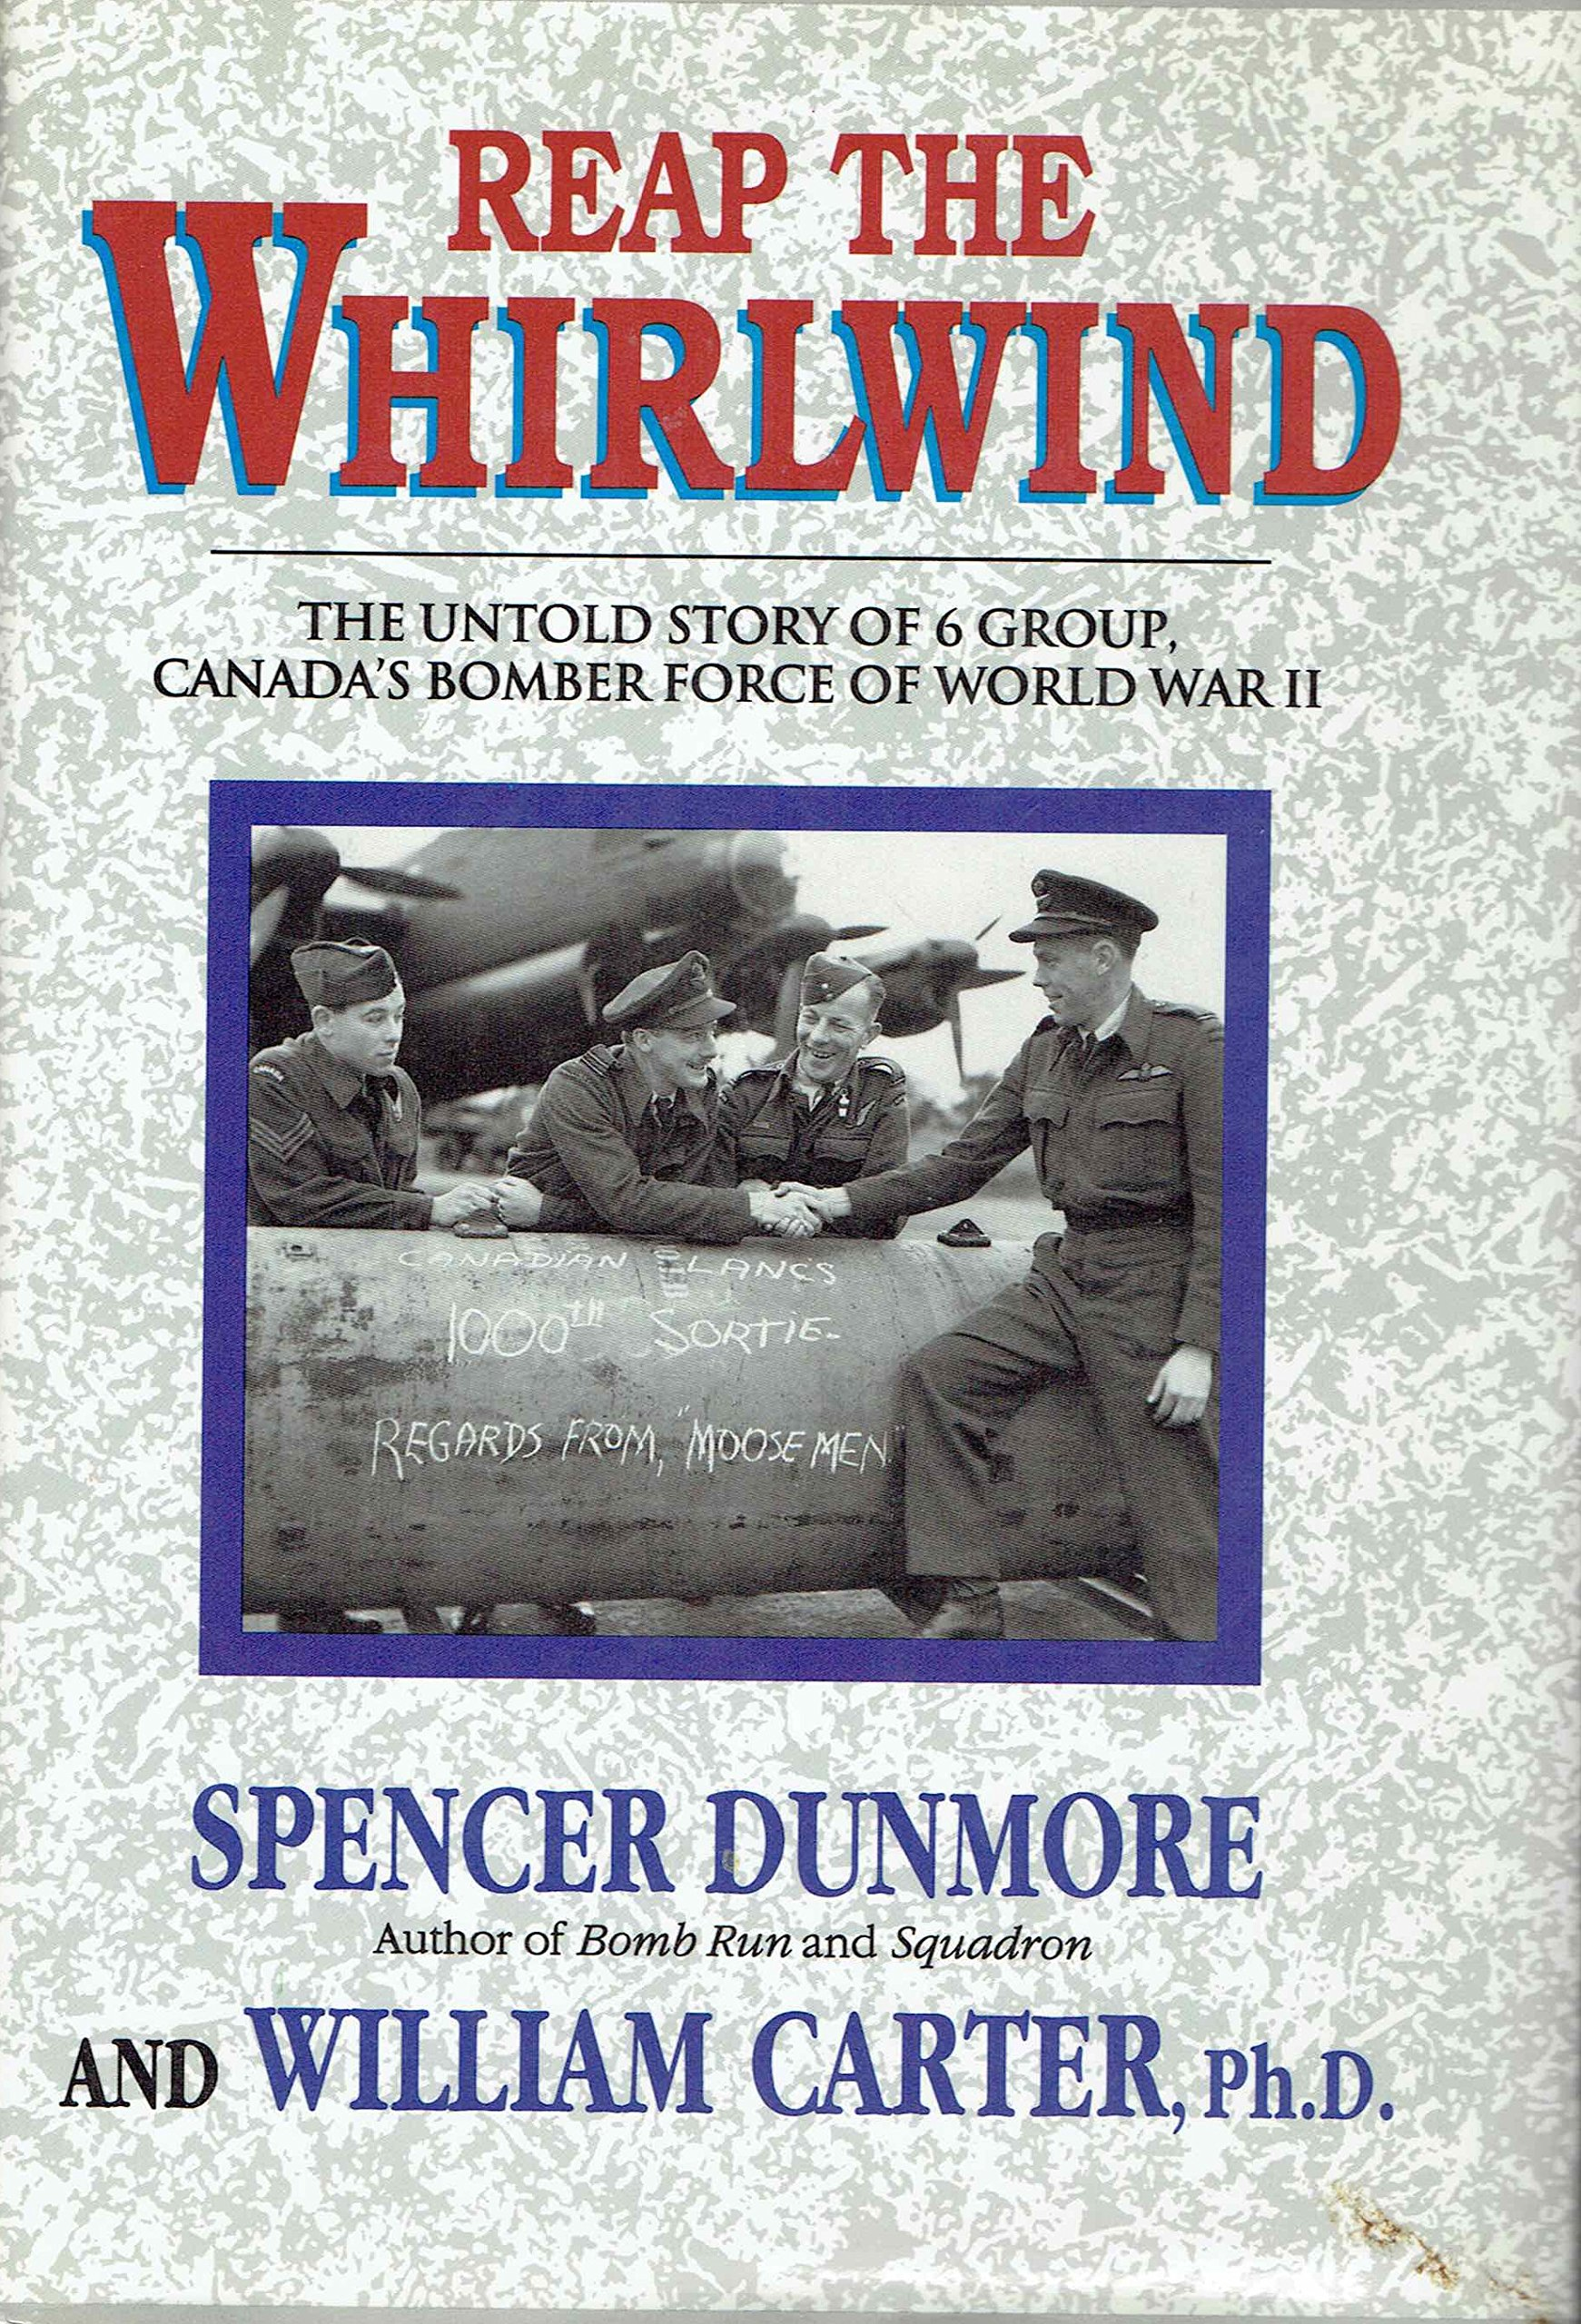 Reap the Whirlwind: The Untold Story of 6 Group, Canada's Bomber Force of World War II